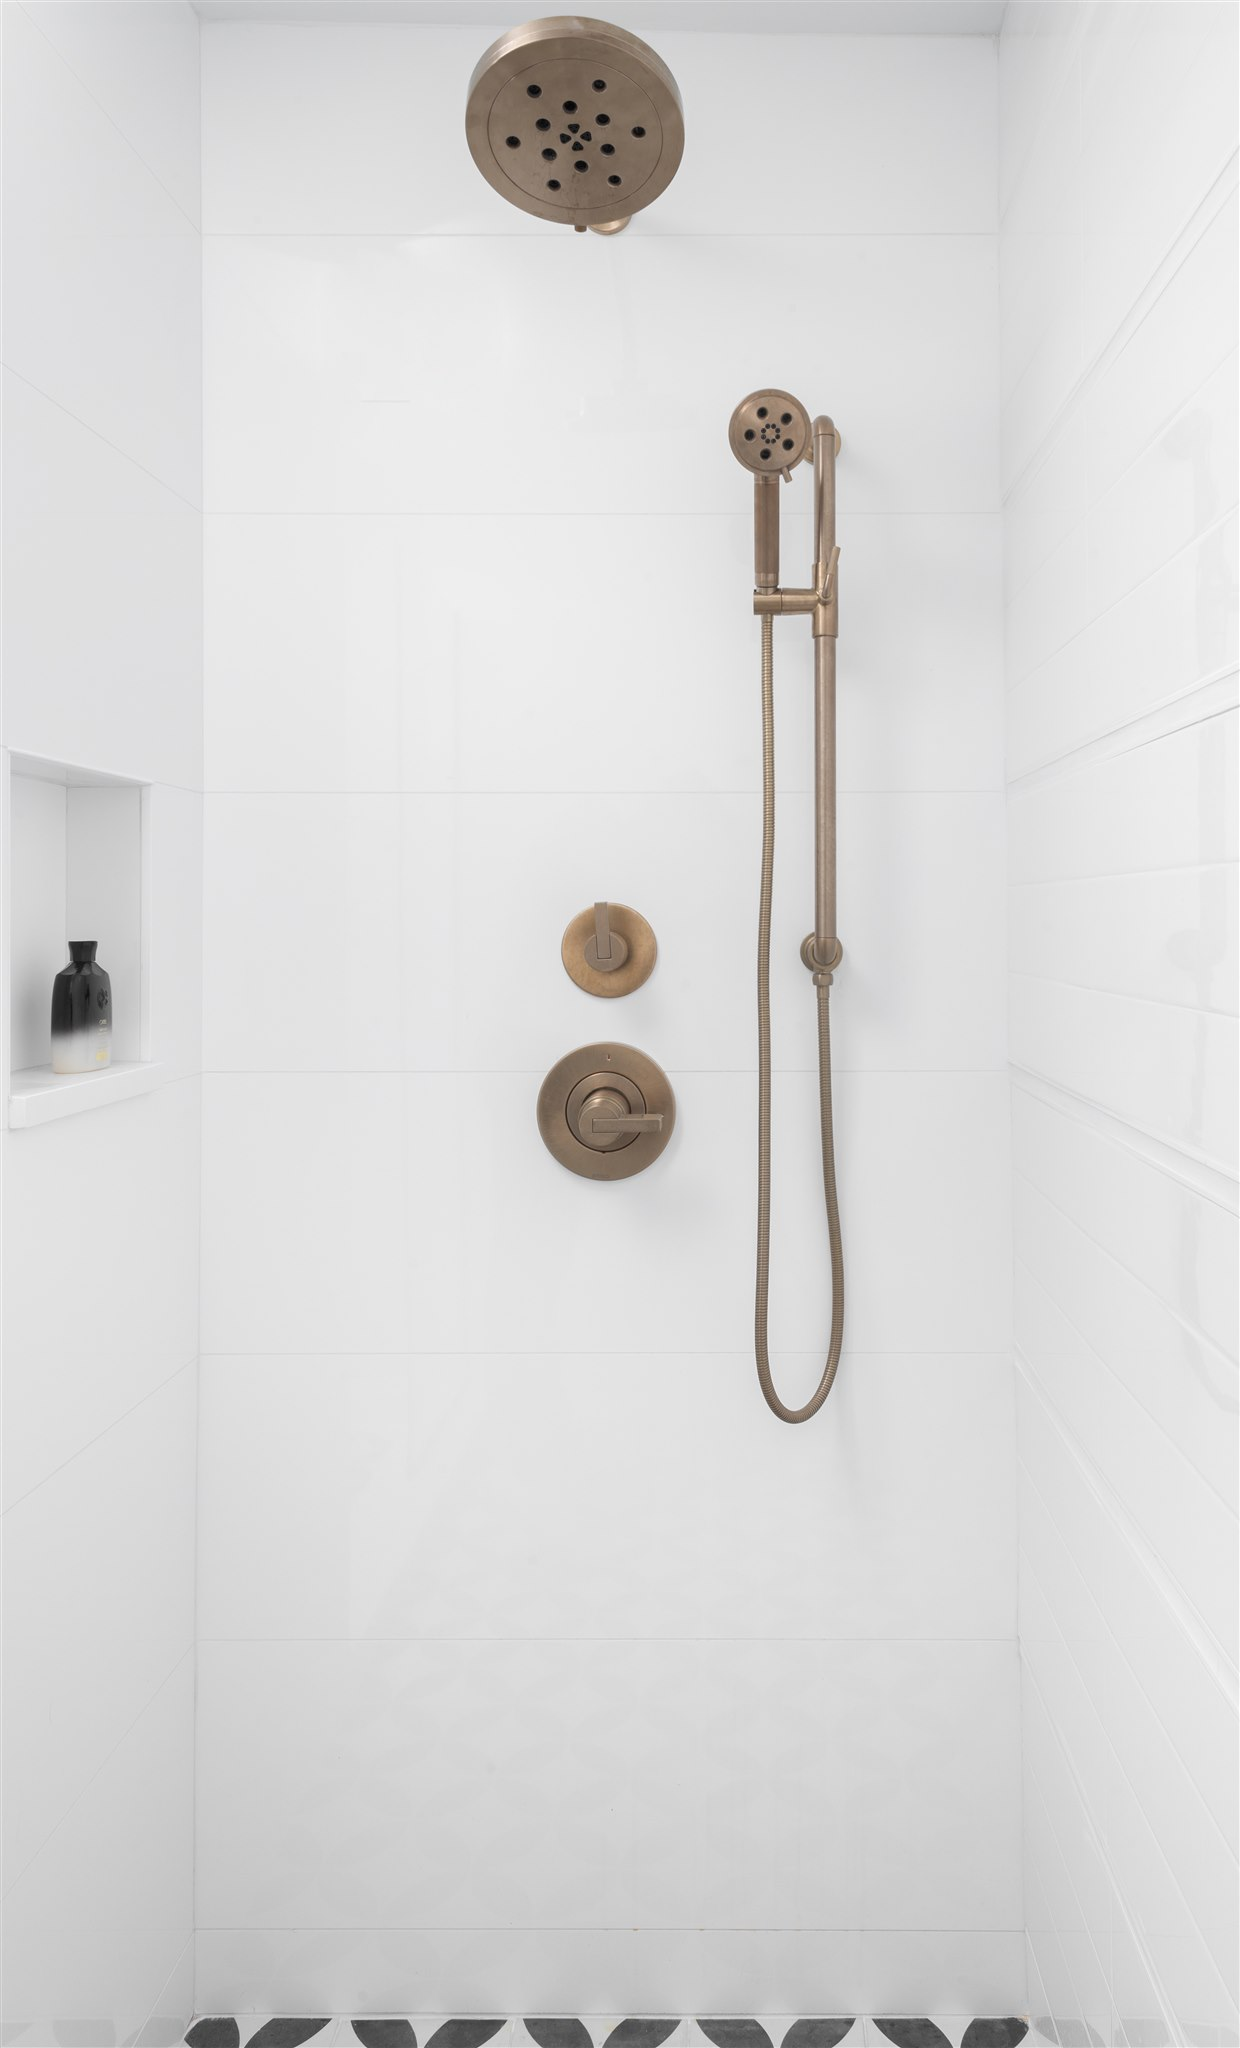 In the shower, we carried in large format white tiles towards the front and back and then played with the pattern of the long subway tiles on the side wall so that all of the horizontal grout lines aligned with the larger format tiles.